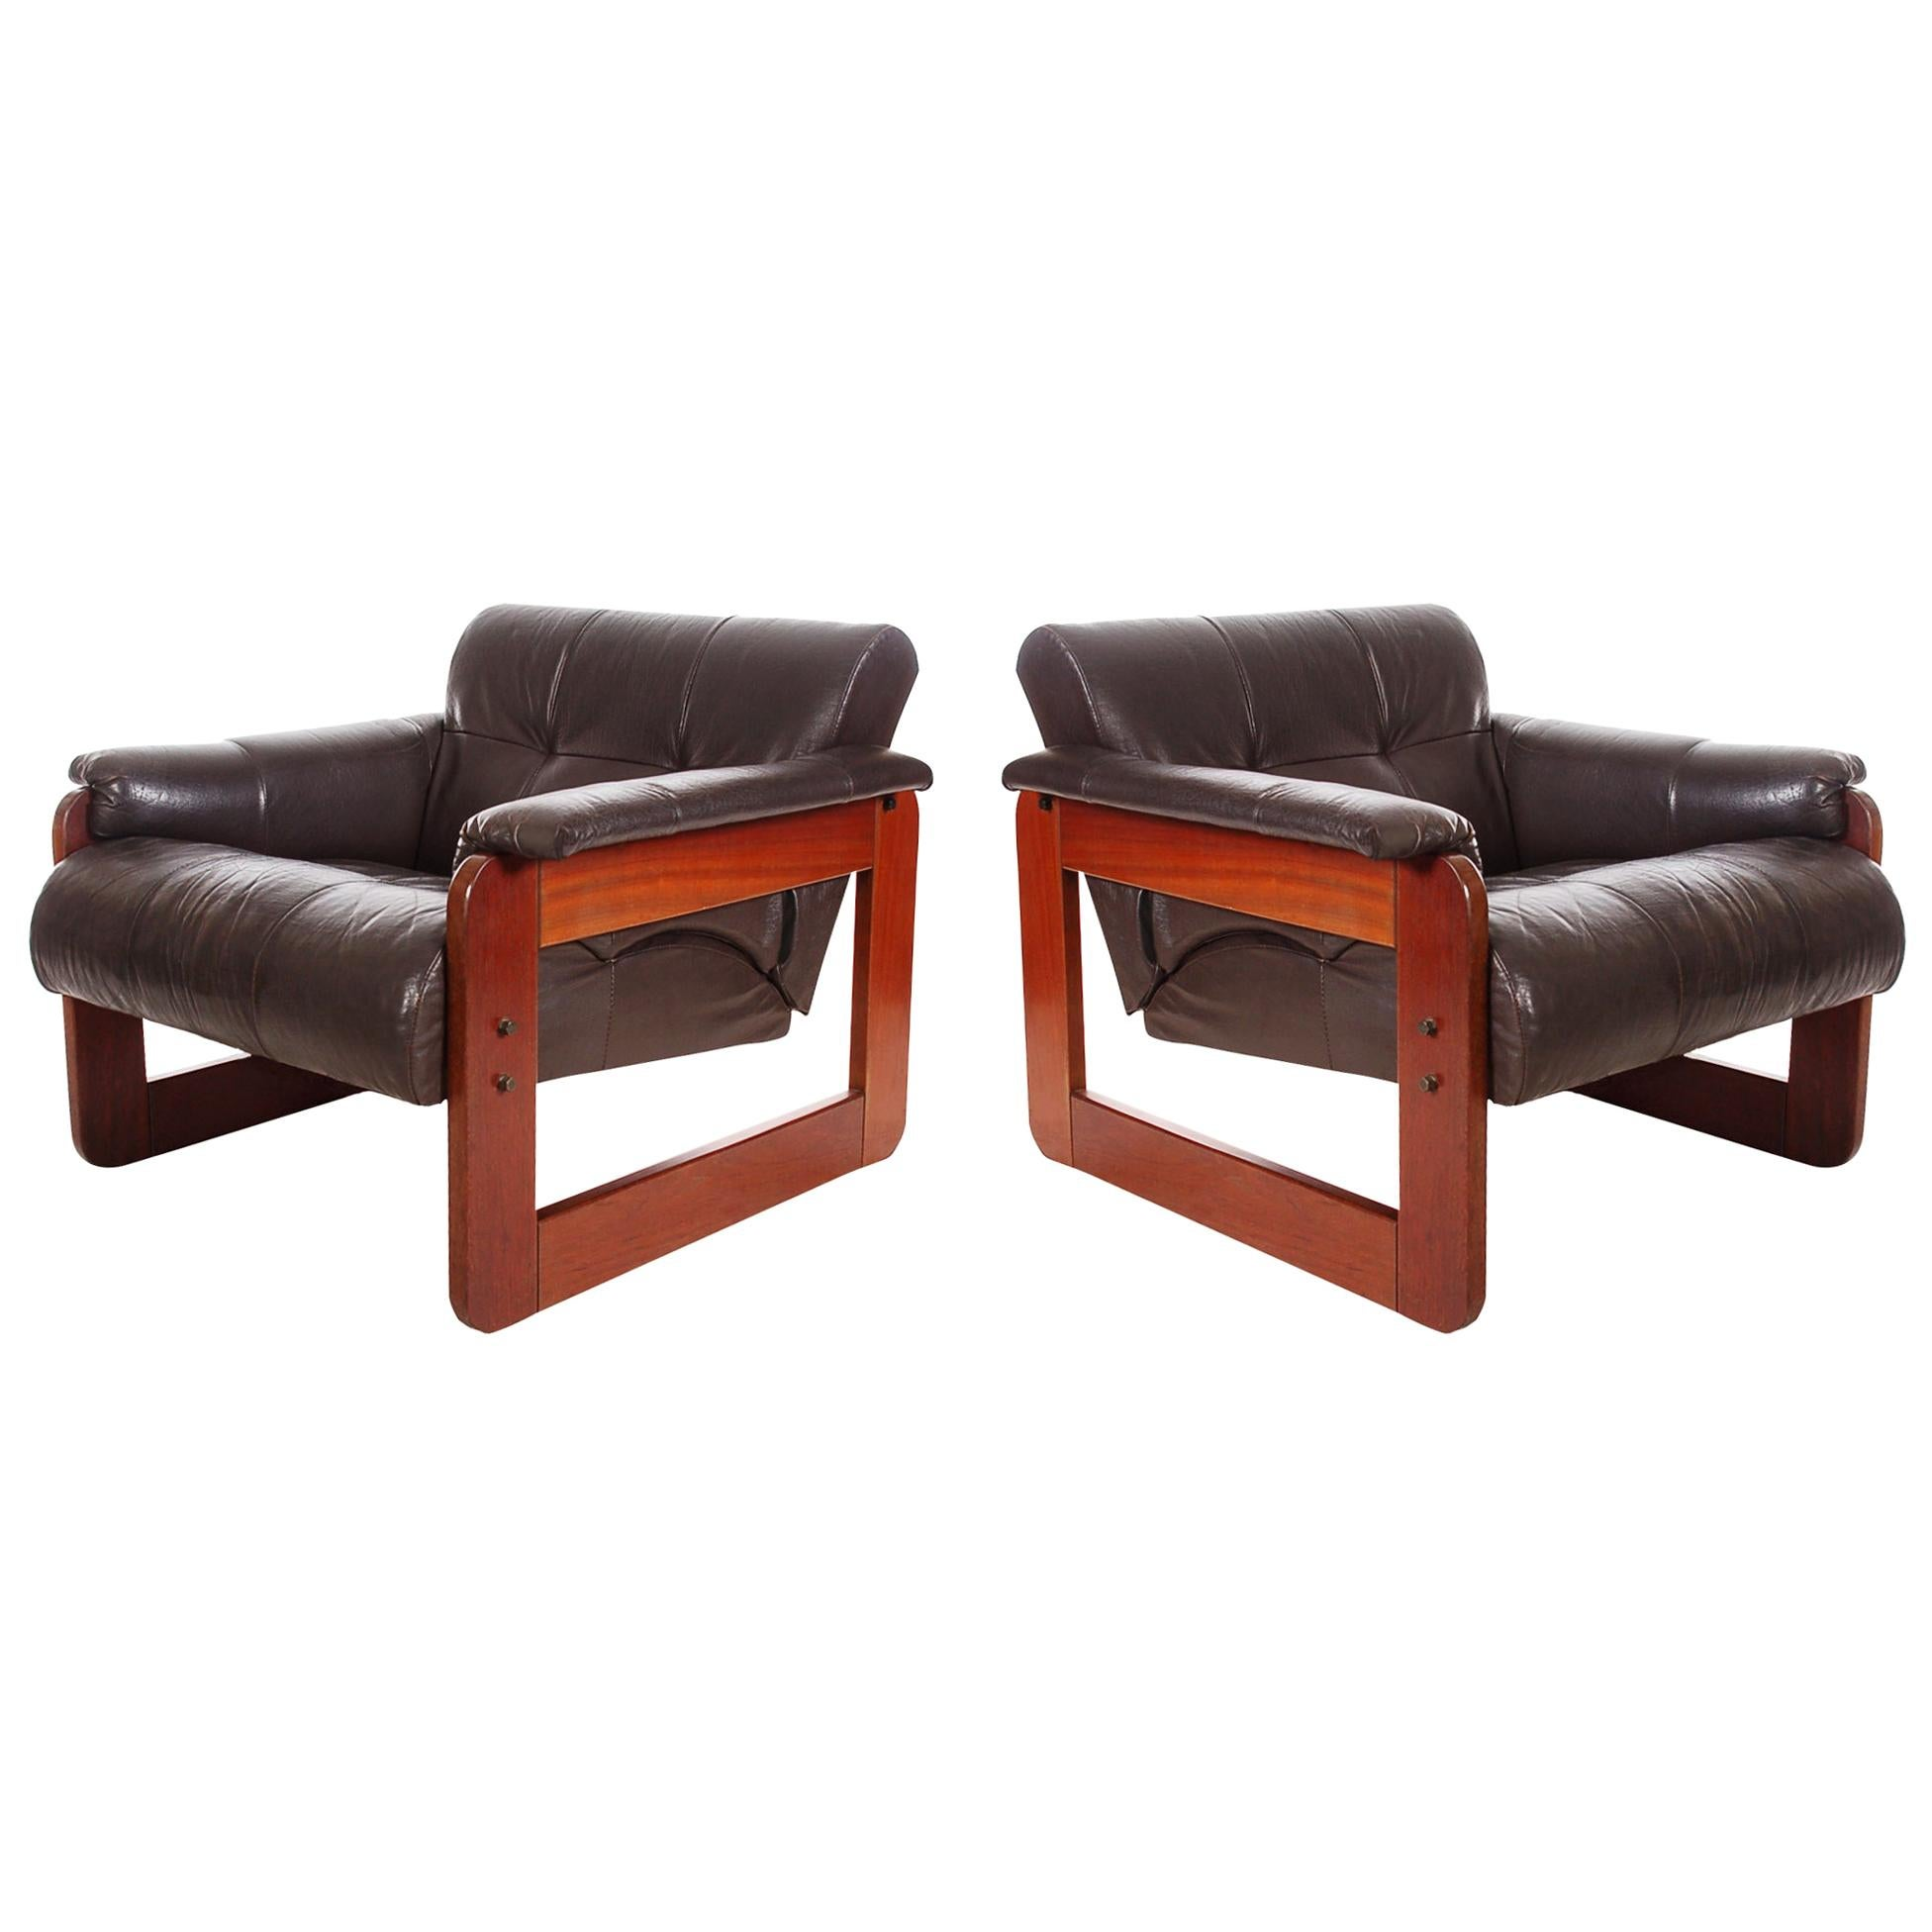 Pair of Midcentury Brazilian Modern Rosewood and Brown Leather Lounge Chairs